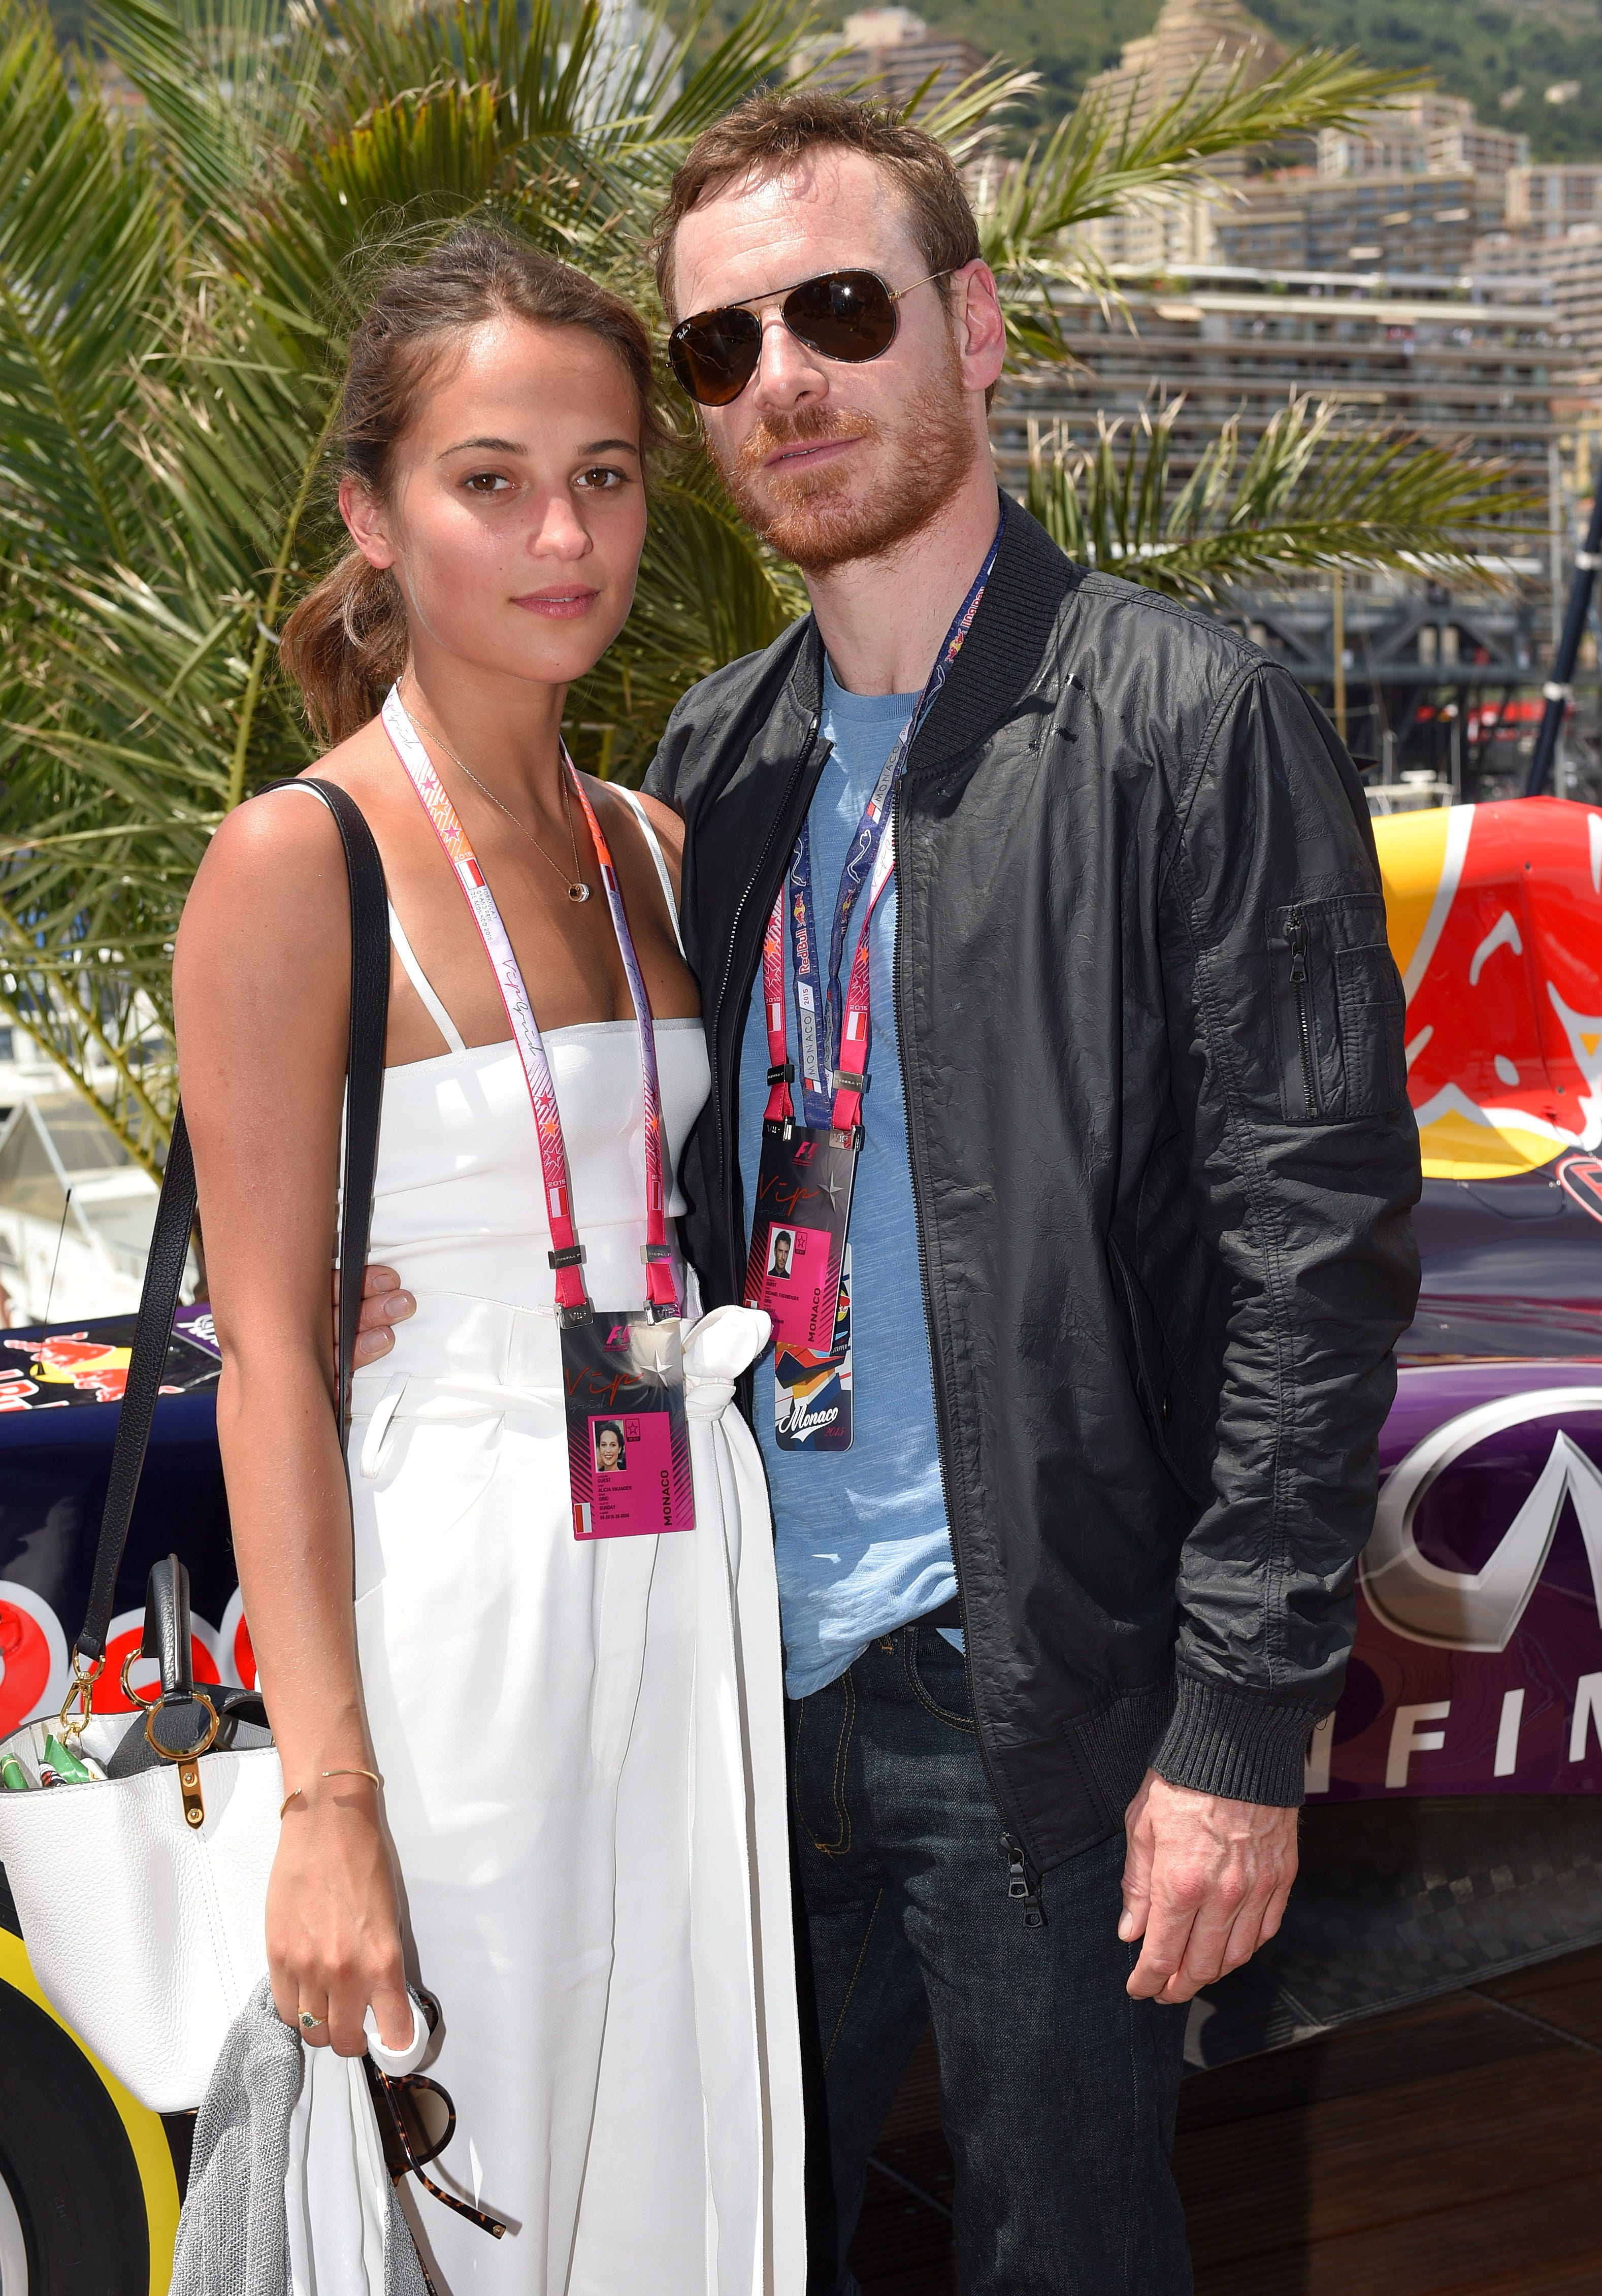 How Michael Fassbender And Alicia Vikander Fell In Love